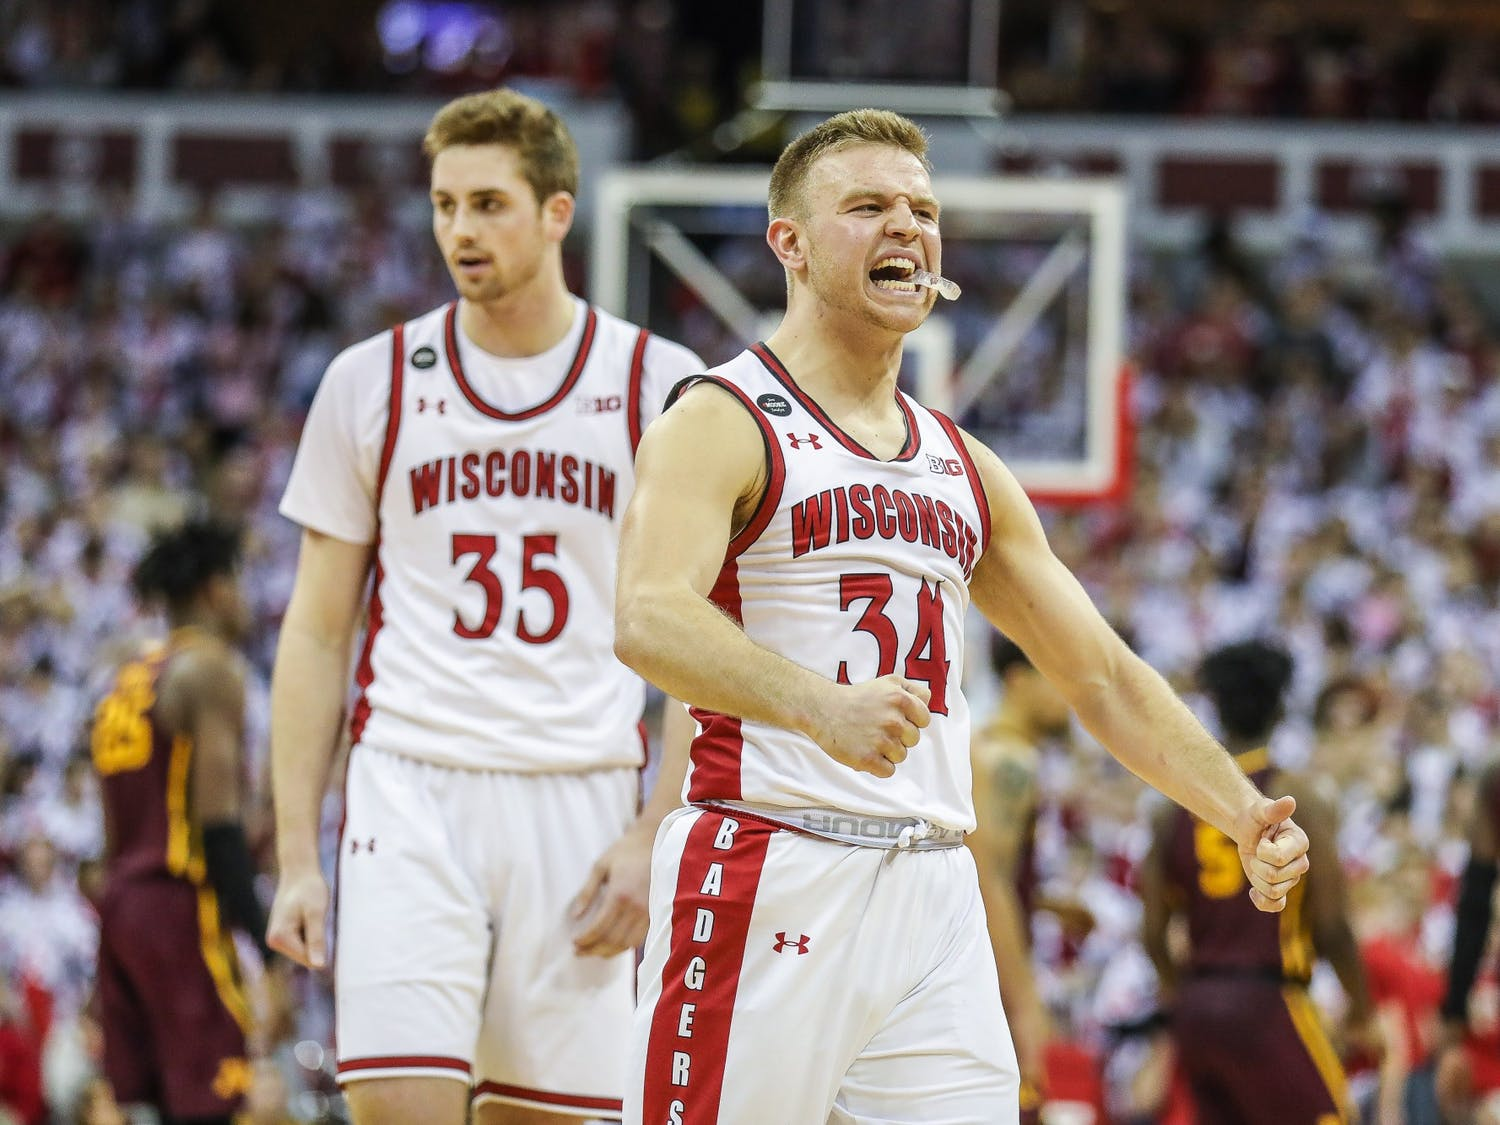 Brad Davison led the Badgers in scoring with 15 points, also adding seven assists to his total.